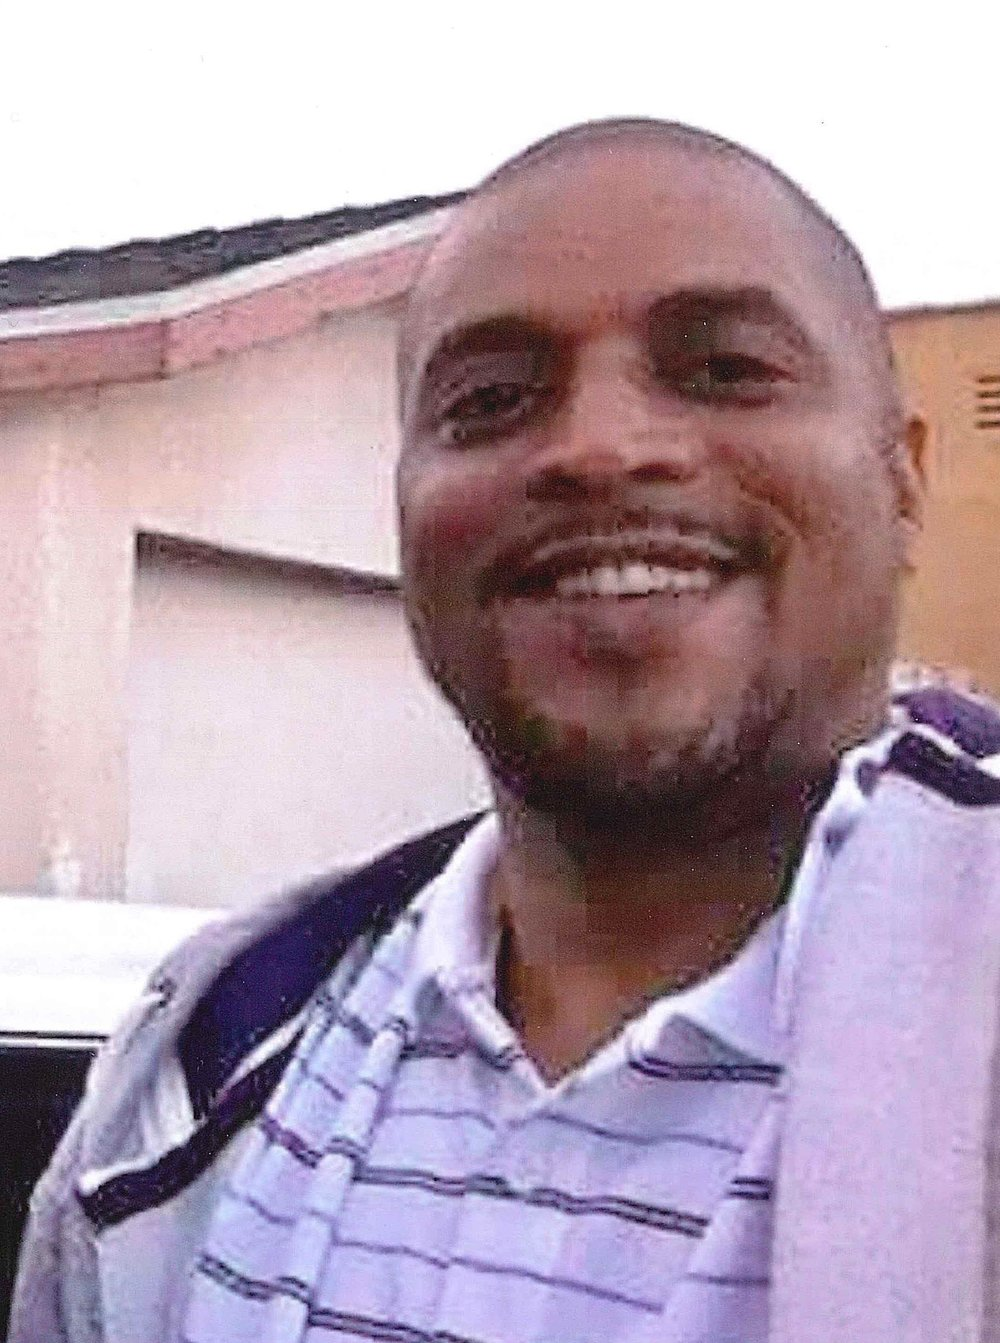 Felix L. Manus, 48, died June 11 at UPMC Hamot. His family says he died after suffering an asthma attack during a work-release shift on May 30. They charge that an Erie County corrections officer failed to promptly call an ambulance as Manus struggled to breathe. [CONTRIBUTED PHOTO]